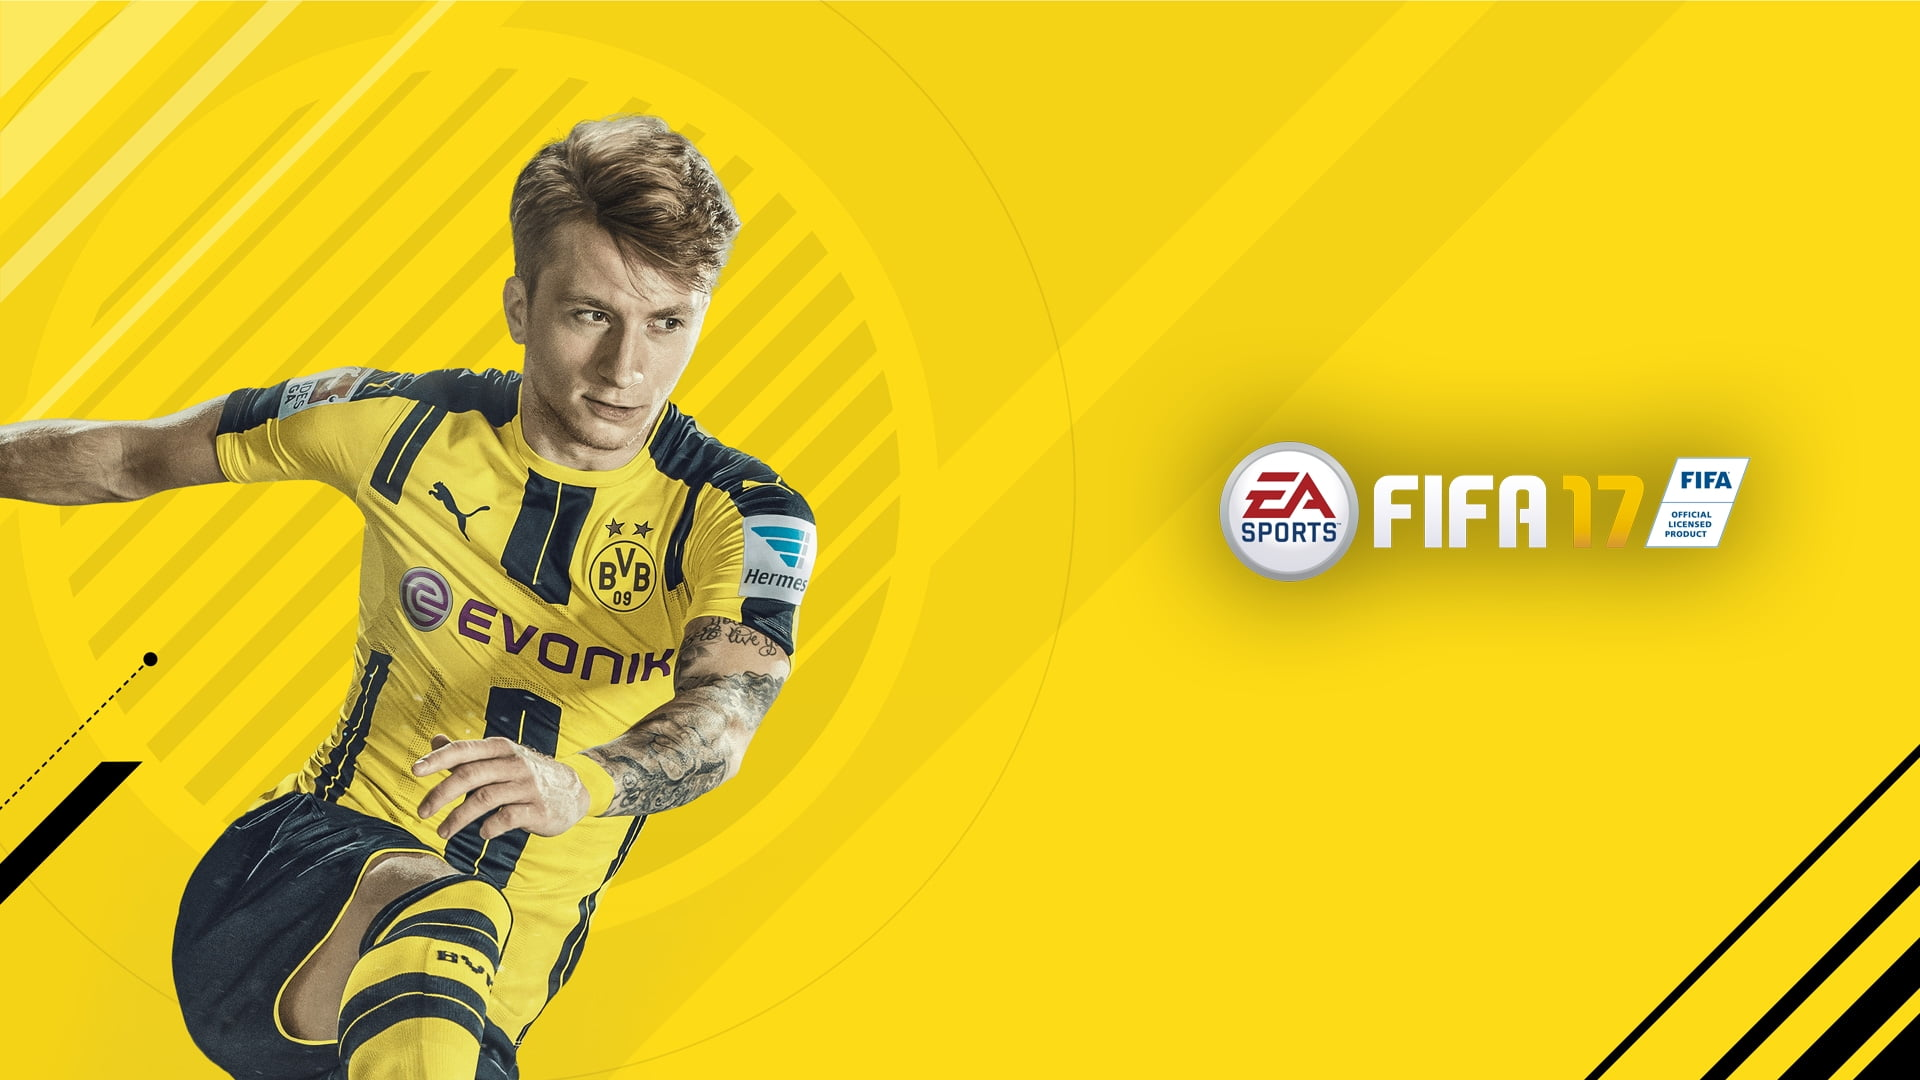 FIFA 17 Mobile llega a las tablets con Windows 10